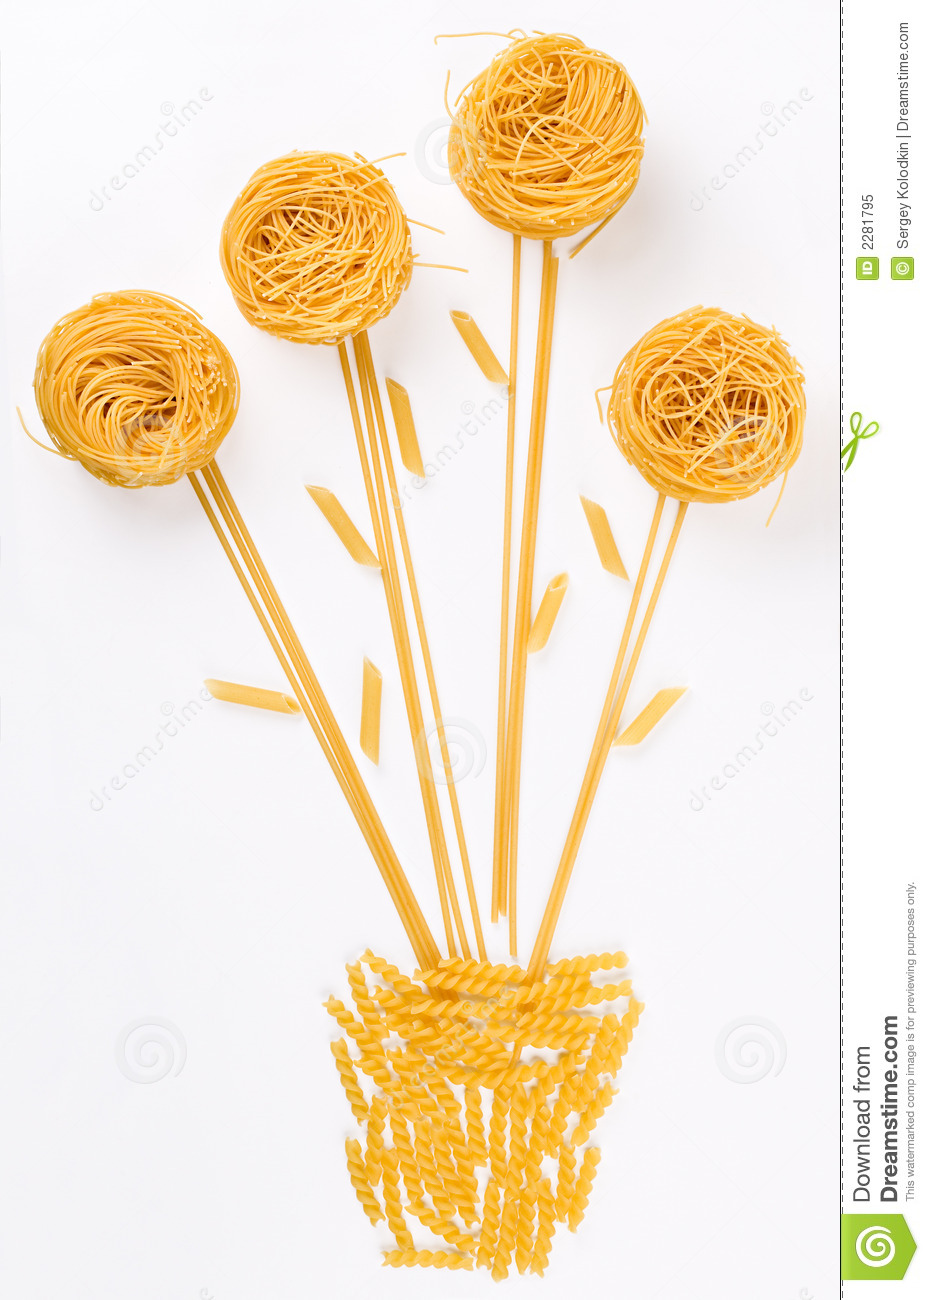 Flower made of pasta